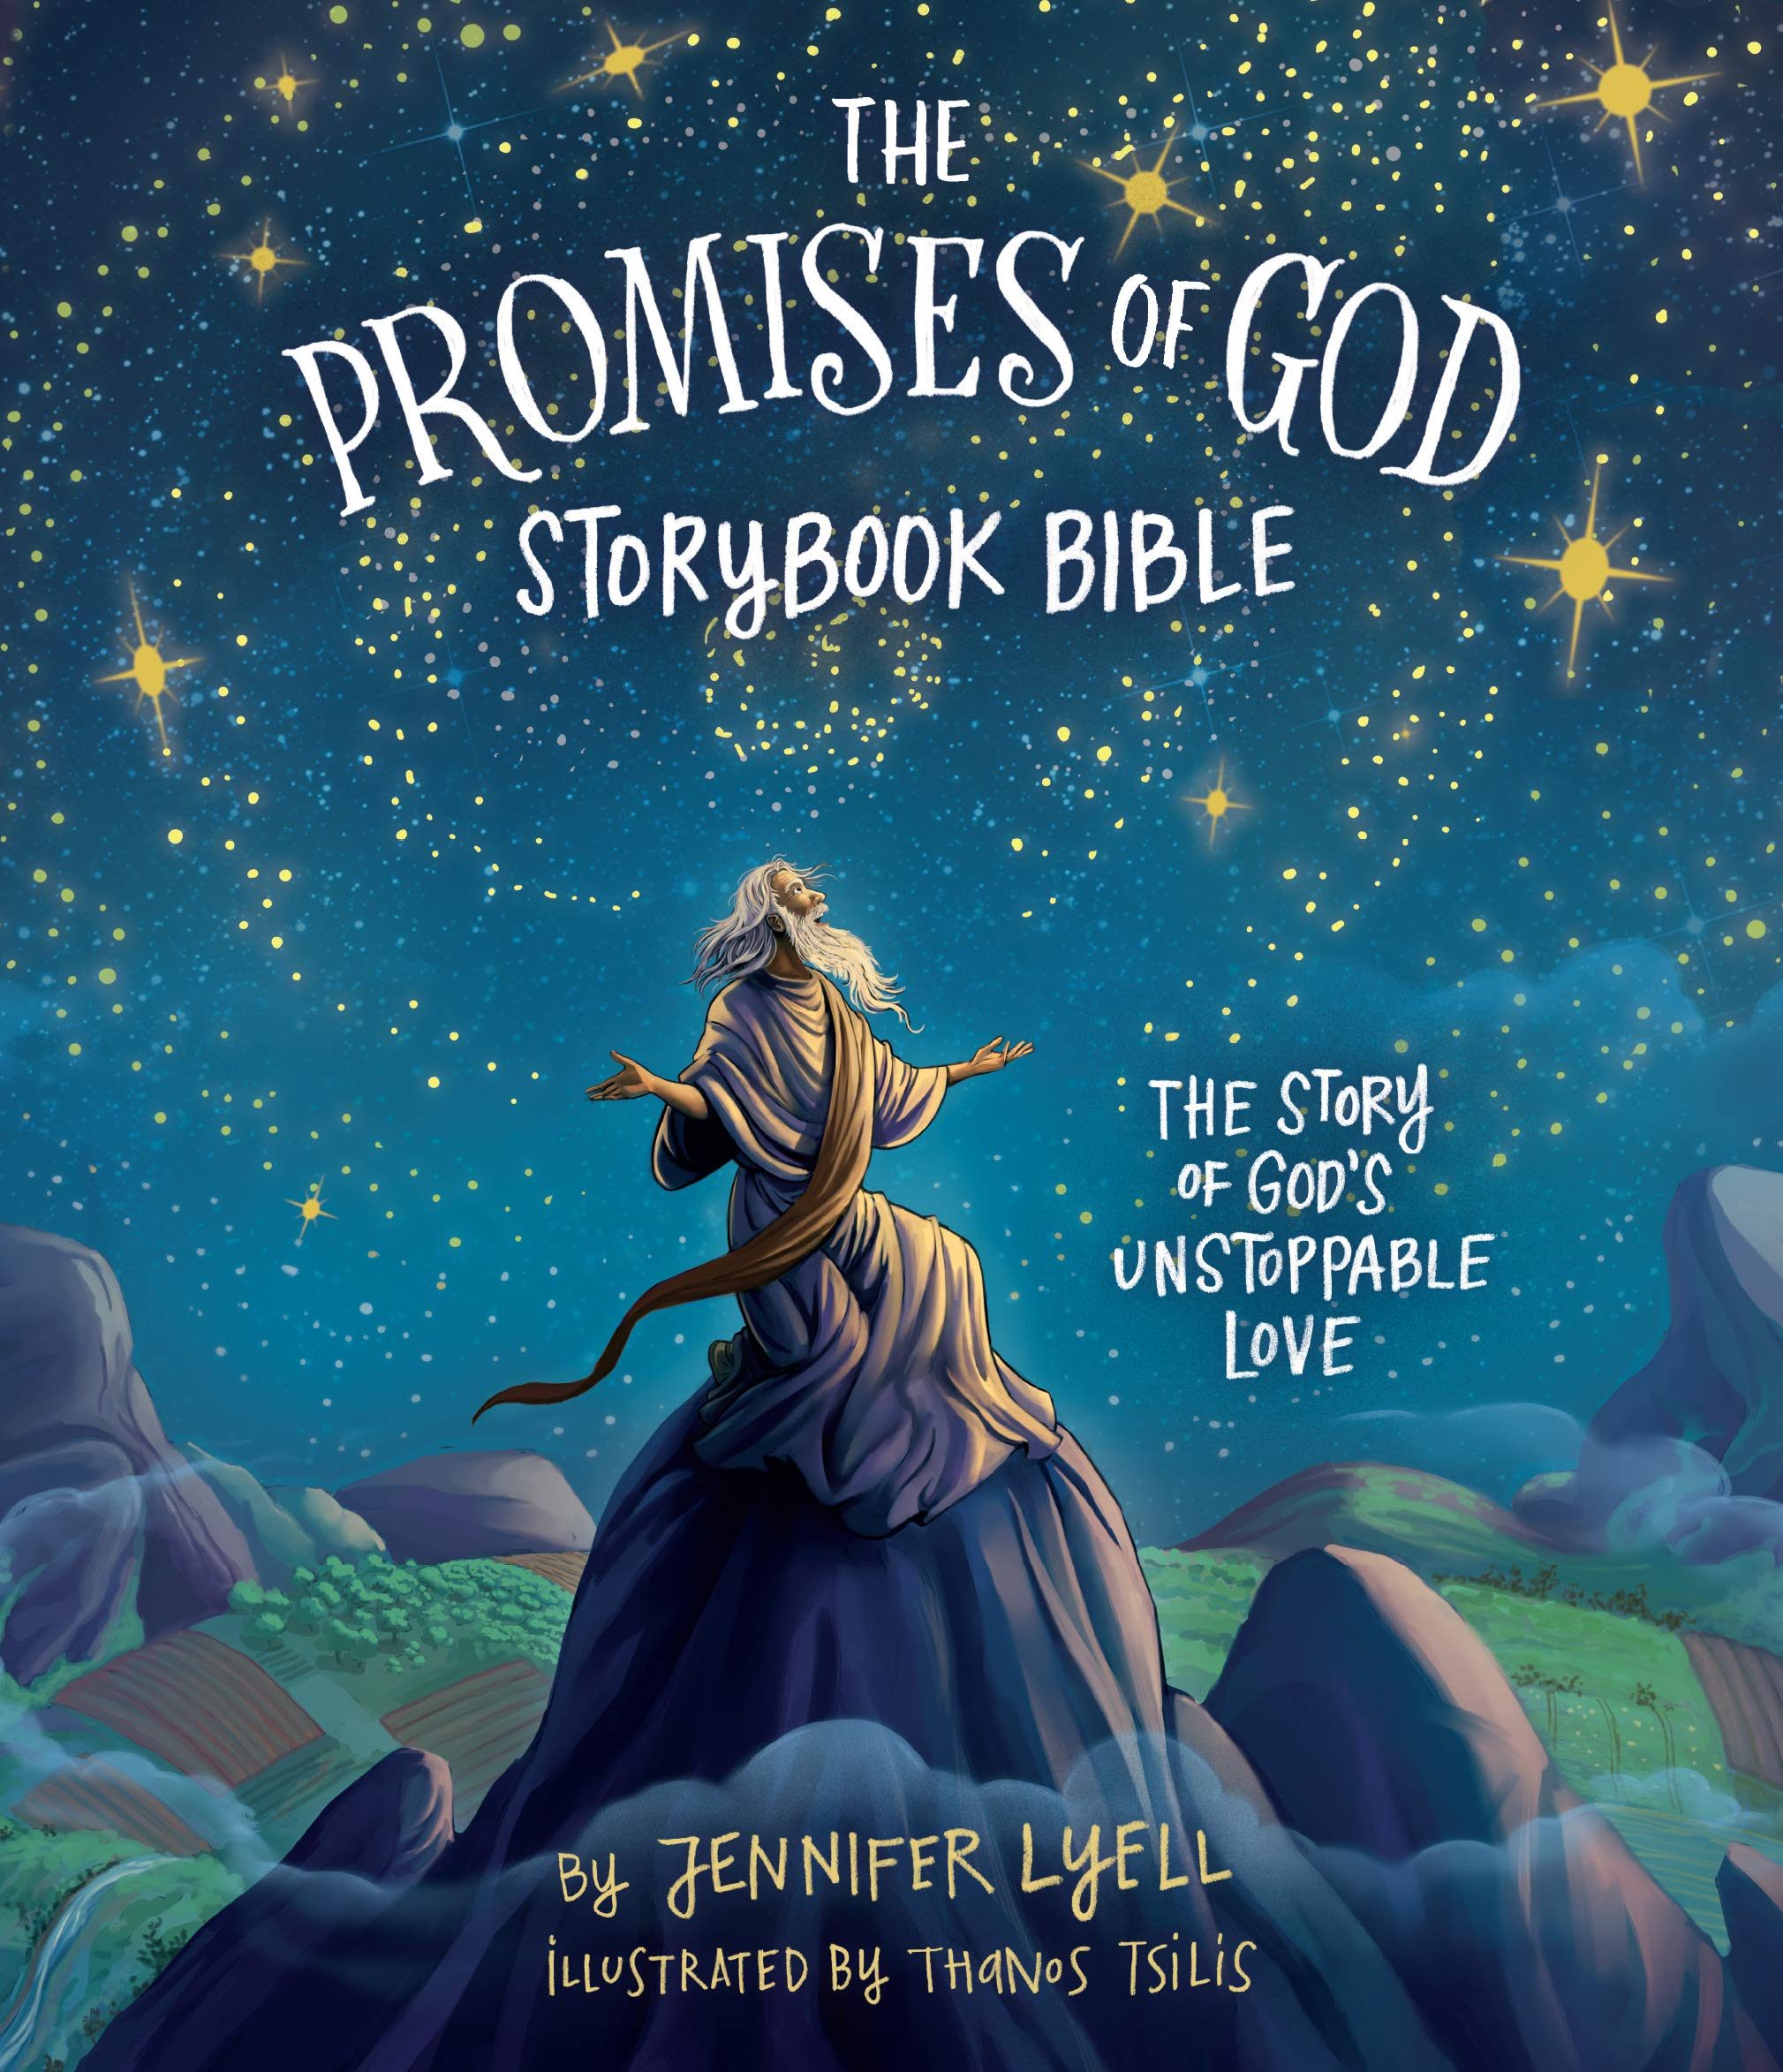 The Promises of God Storybook Bible: The Story of God's Unstoppable Love